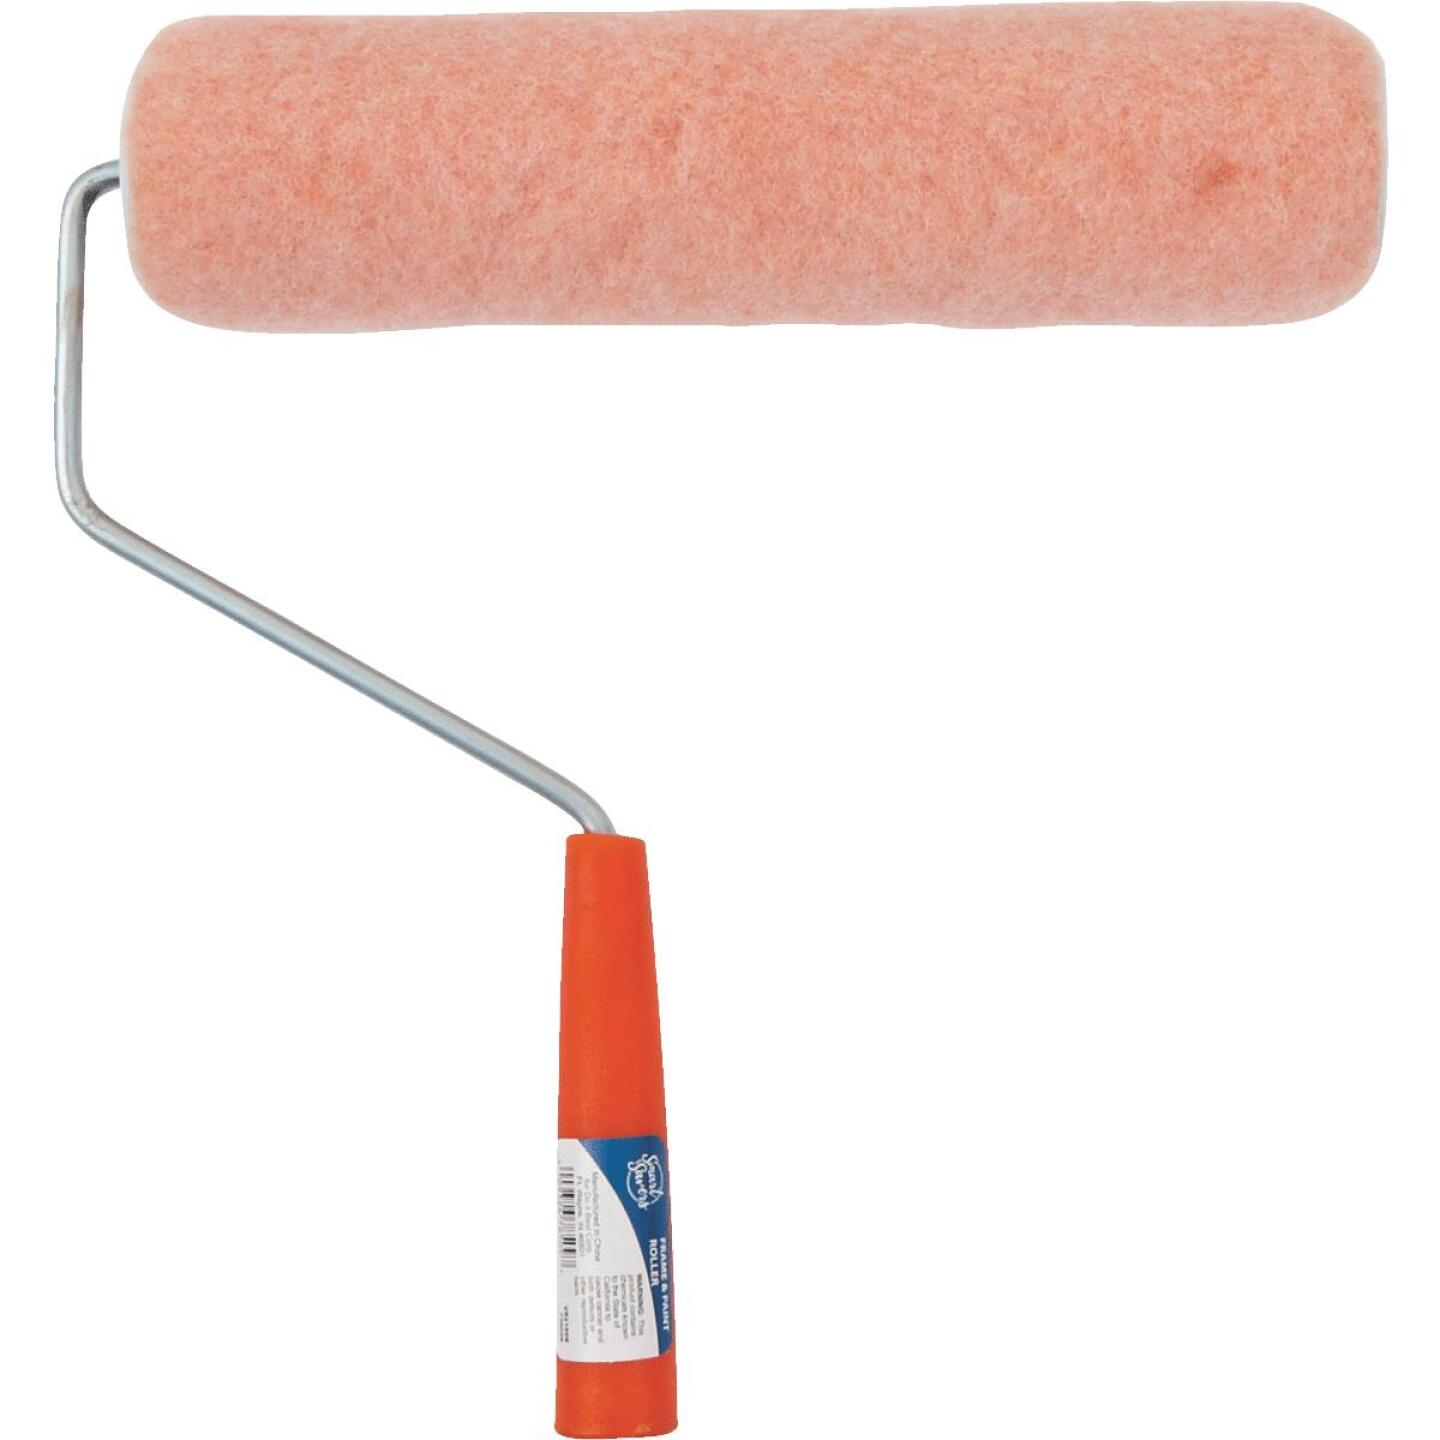 Smart Savers 9 In. x 3/8 In. Semi-Smooth Paint Roller Cover & Frame Image 2